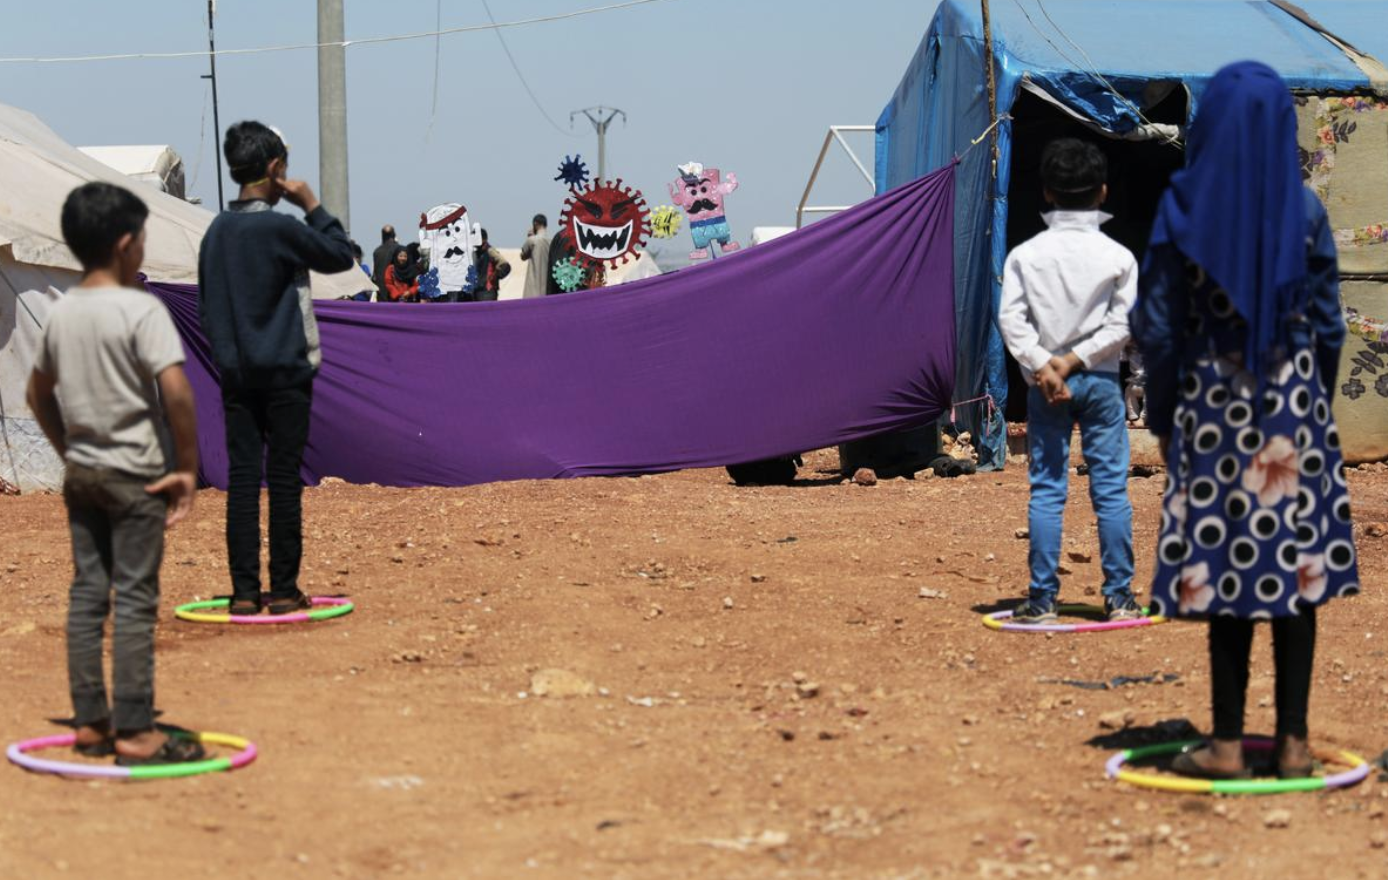 Displaced children attend a puppet show during an event organzied by Violet Organization, in an effort to spread awareness and encourage safety amid coronavirus disease (COVID-19) fears, at a camp in the town of Maarat Masrin in northern Idlib, Syria (Khalil Ashawi, April 14th, 2020) Reuters.